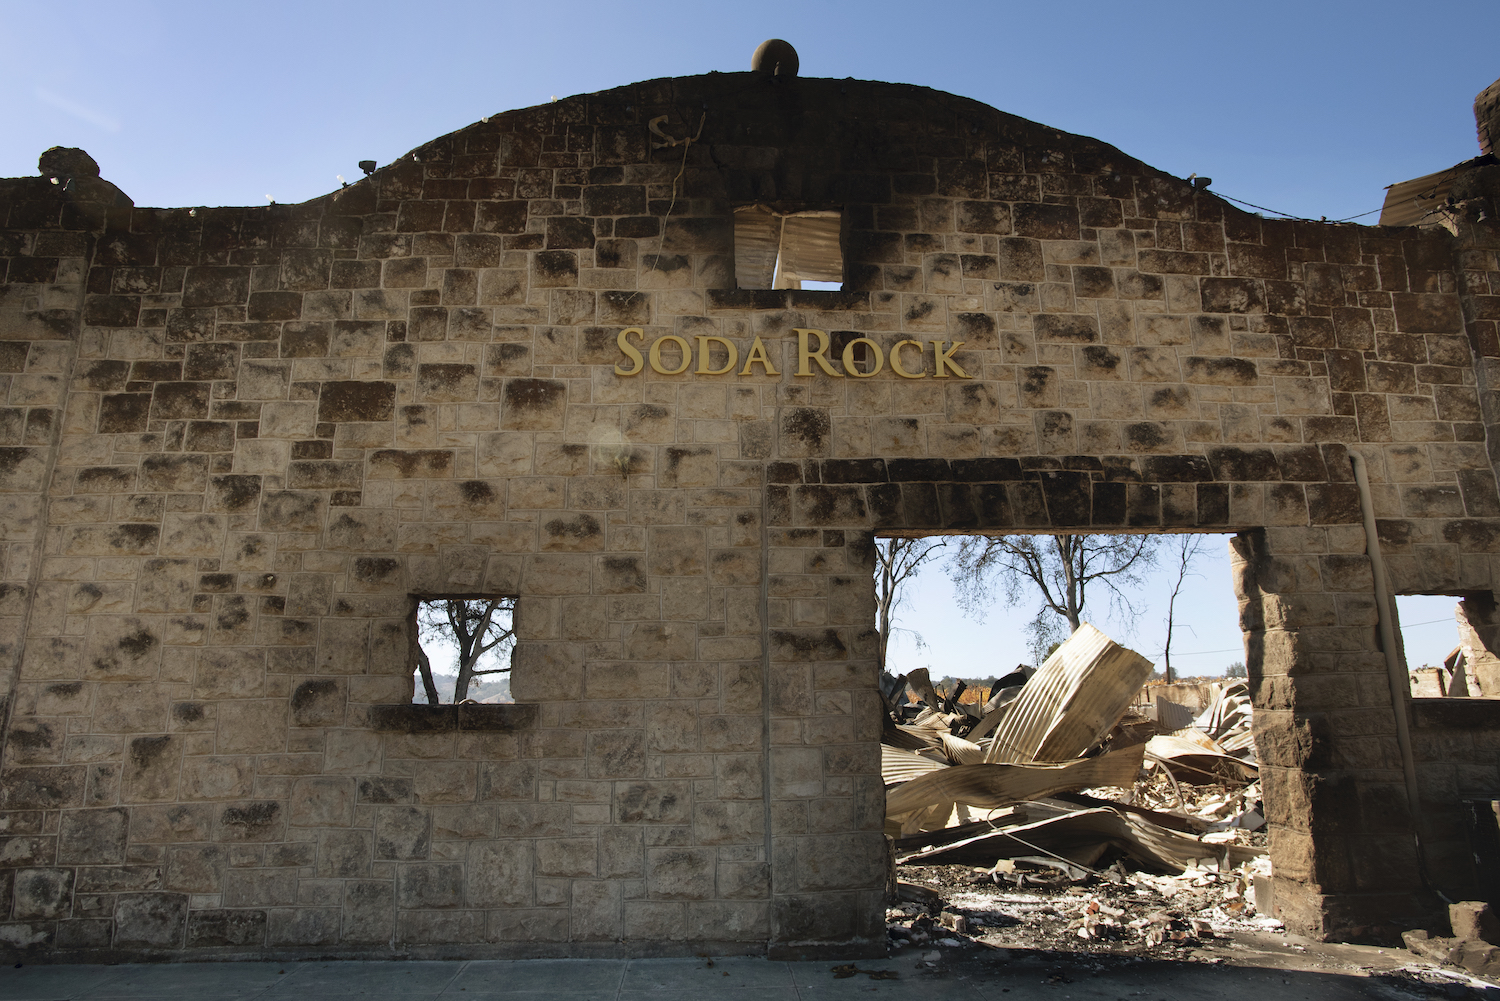 Soda Rock Winery after the Kincade fire